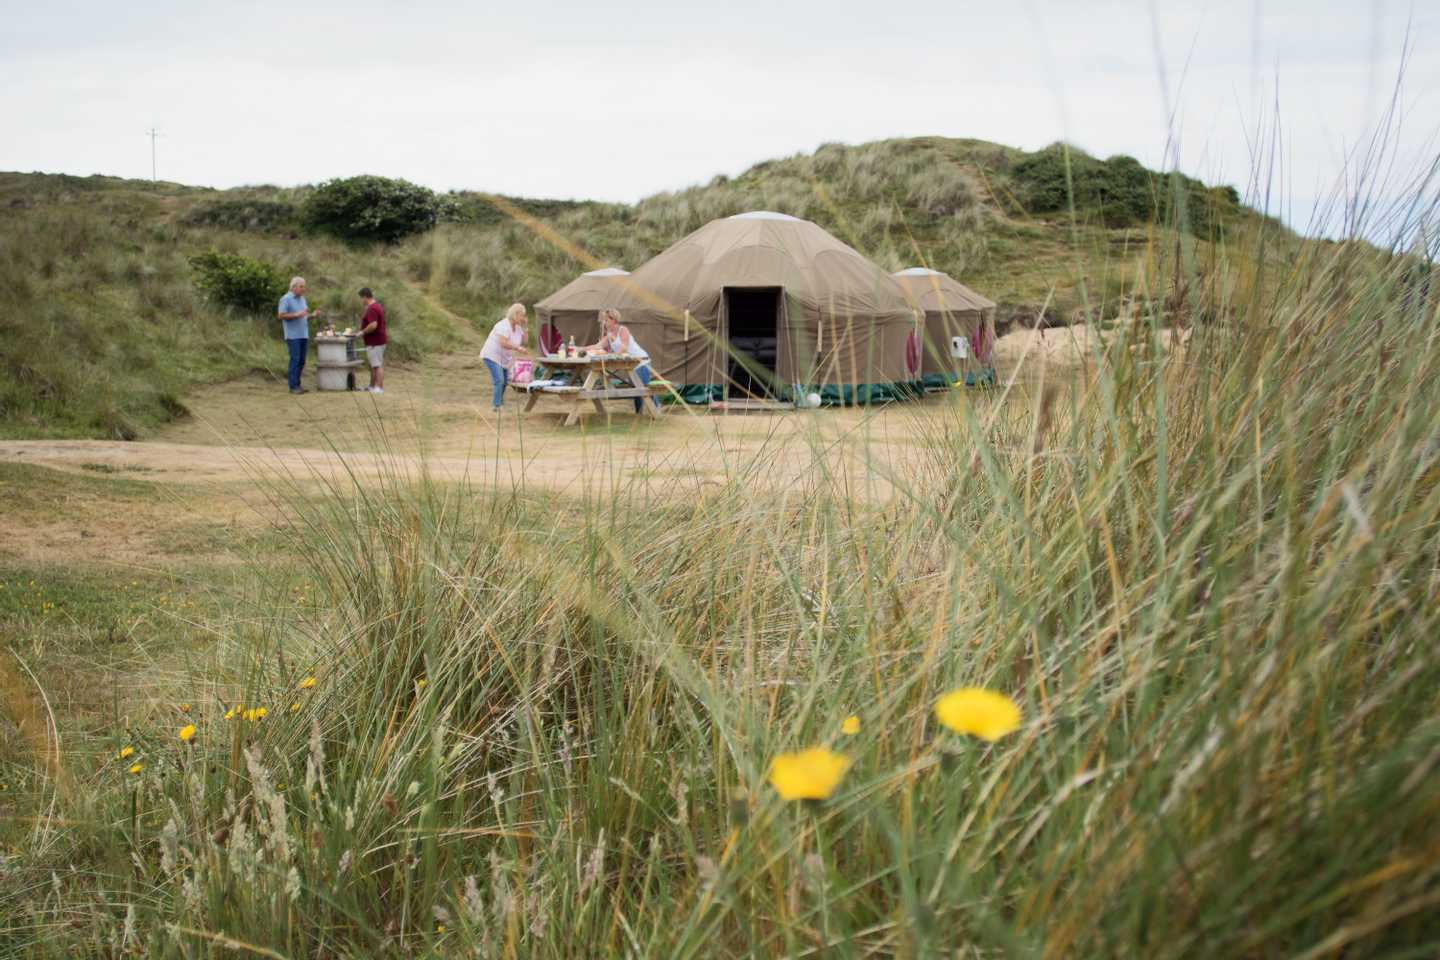 A family outside a Yurt (exclusive to Perran Sands)